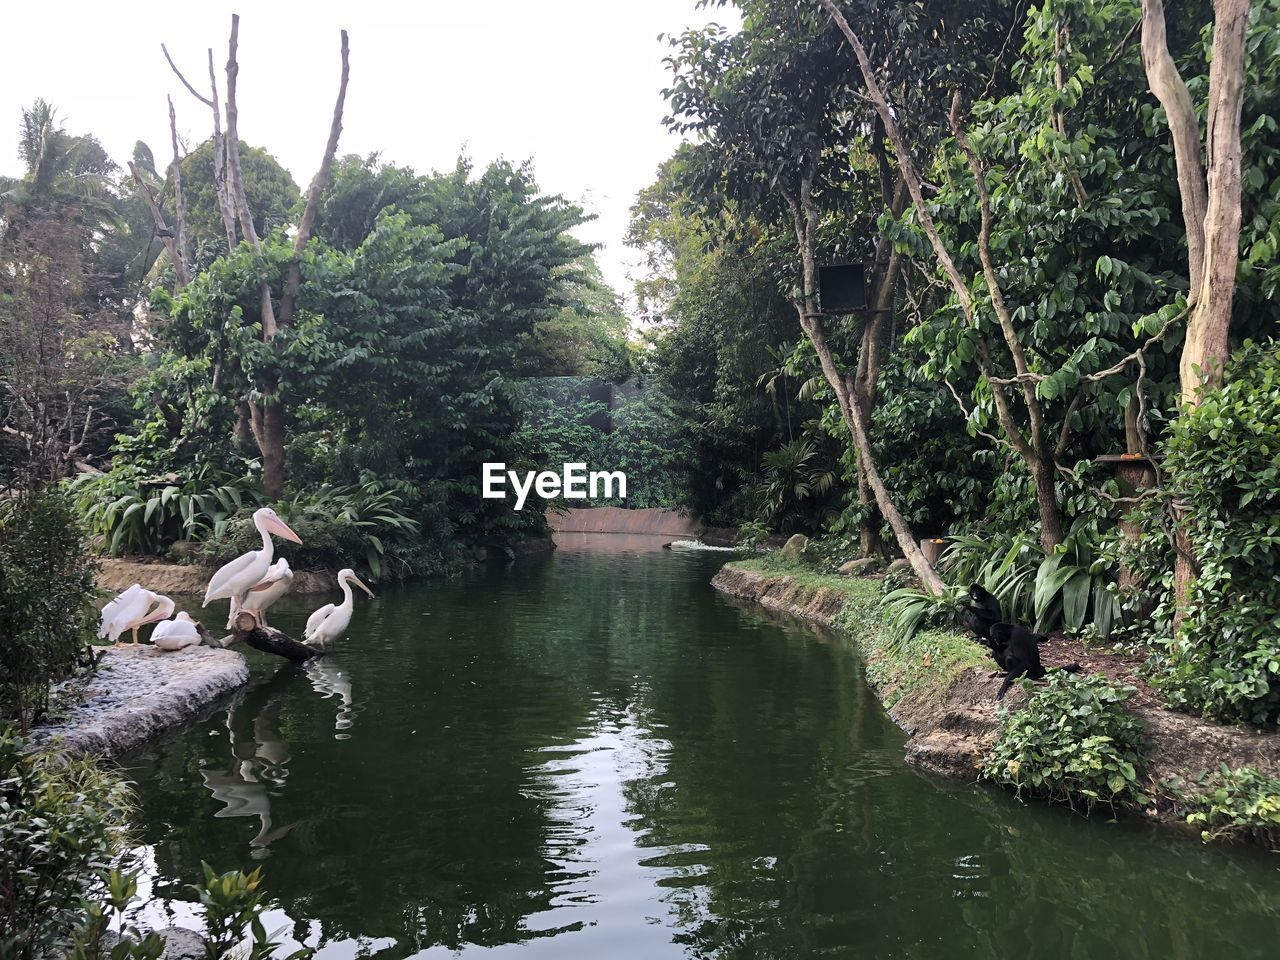 water, tree, plant, nature, lake, group of animals, animal themes, animal, animals in the wild, beauty in nature, animal wildlife, bird, reflection, vertebrate, tranquility, day, no people, growth, waterfront, outdoors